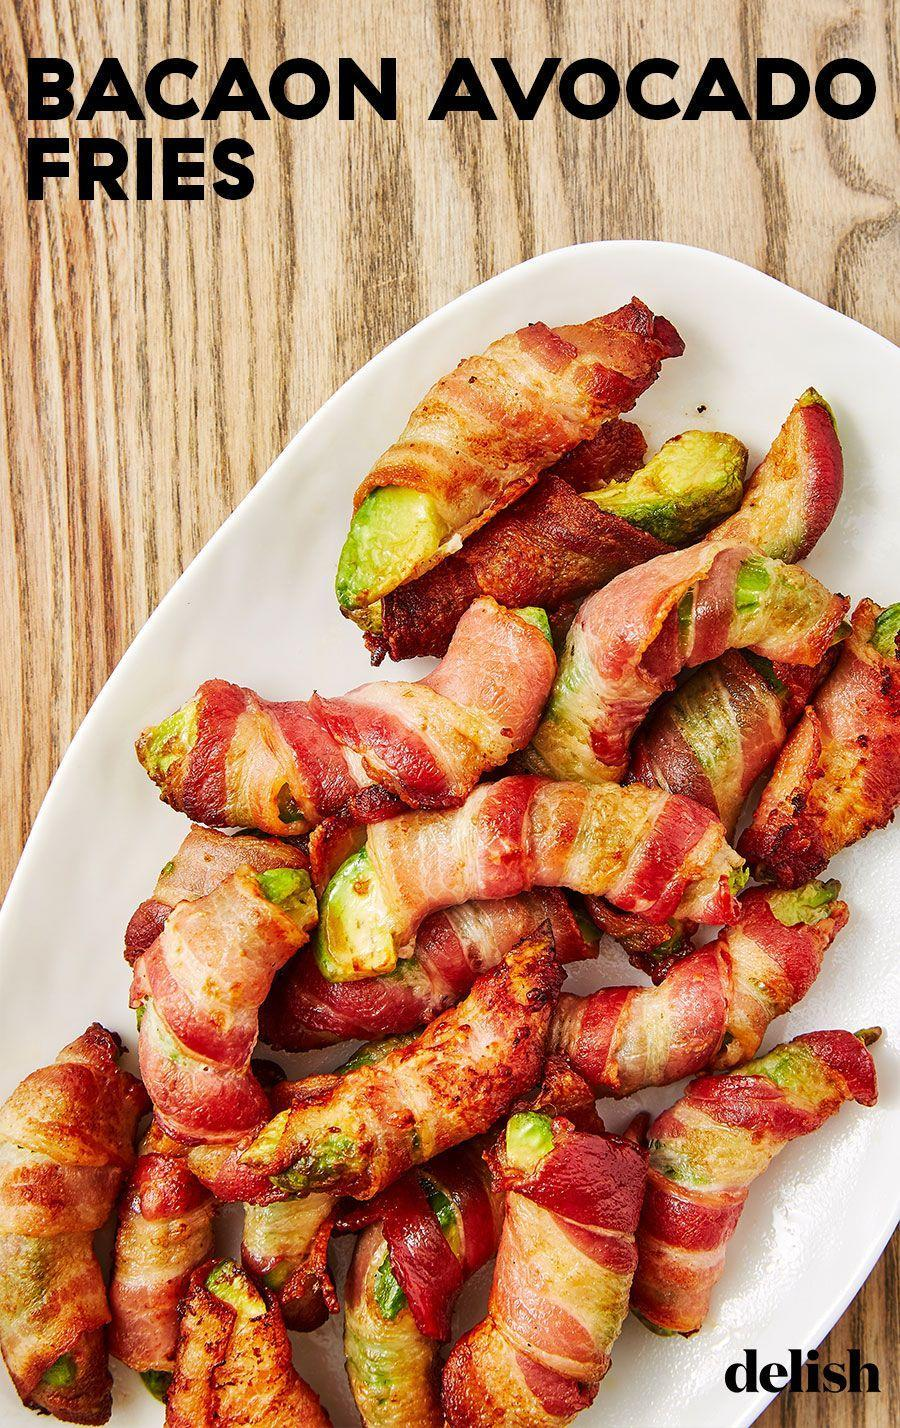 """<p>Simply mouth-watering.</p><p>Get the recipe from <a href=""""https://www.delish.com/cooking/recipe-ideas/recipes/a48261/bacon-avocado-fries-recipe/"""" rel=""""nofollow noopener"""" target=""""_blank"""" data-ylk=""""slk:Delish"""" class=""""link rapid-noclick-resp"""">Delish</a>.</p>"""